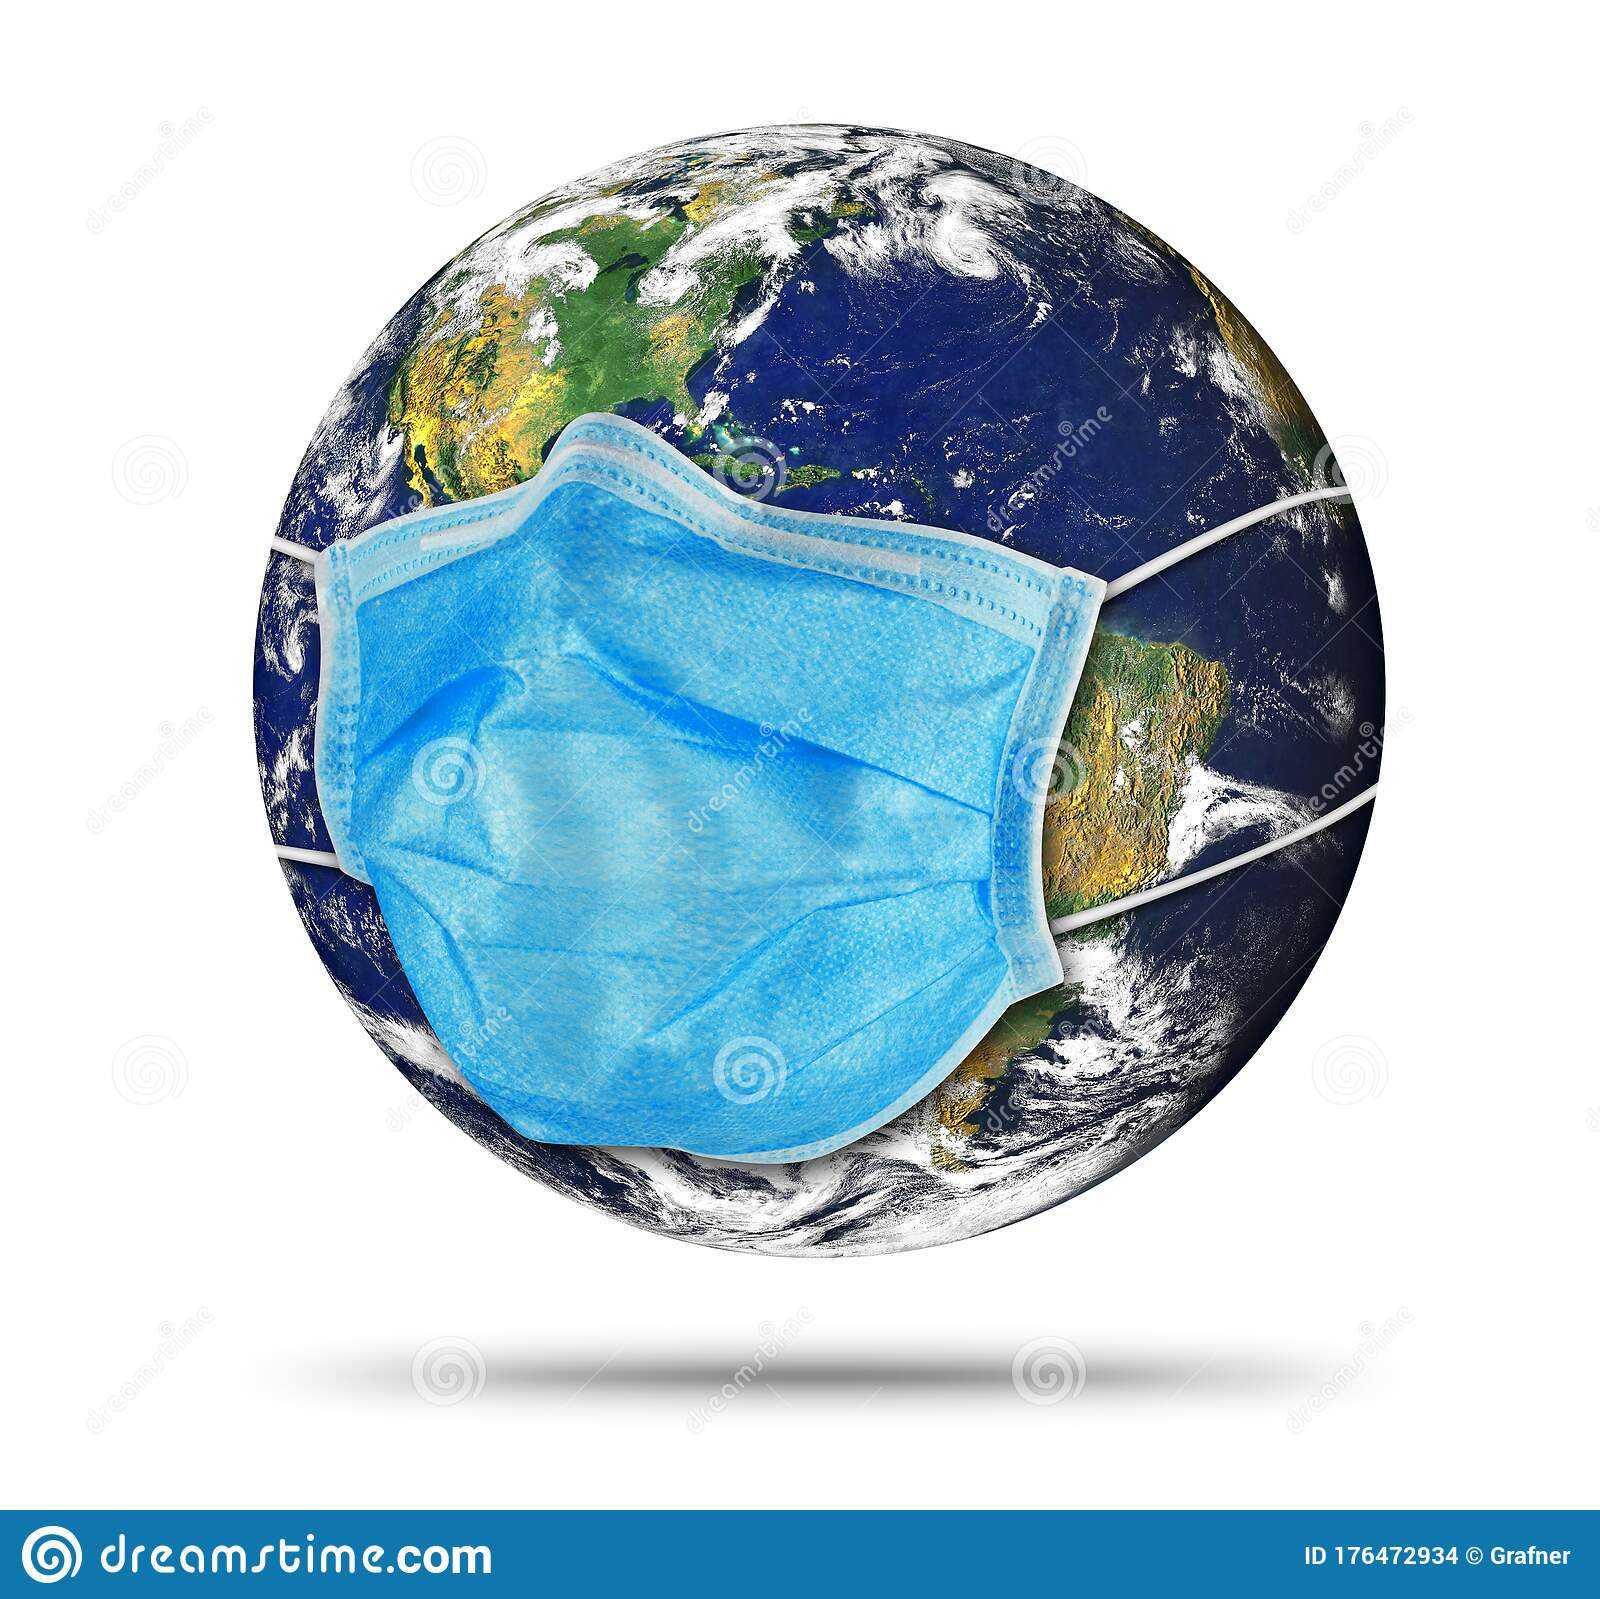 107 888 World Globe Photos Free Royalty Free Stock Photos From Dreamstime